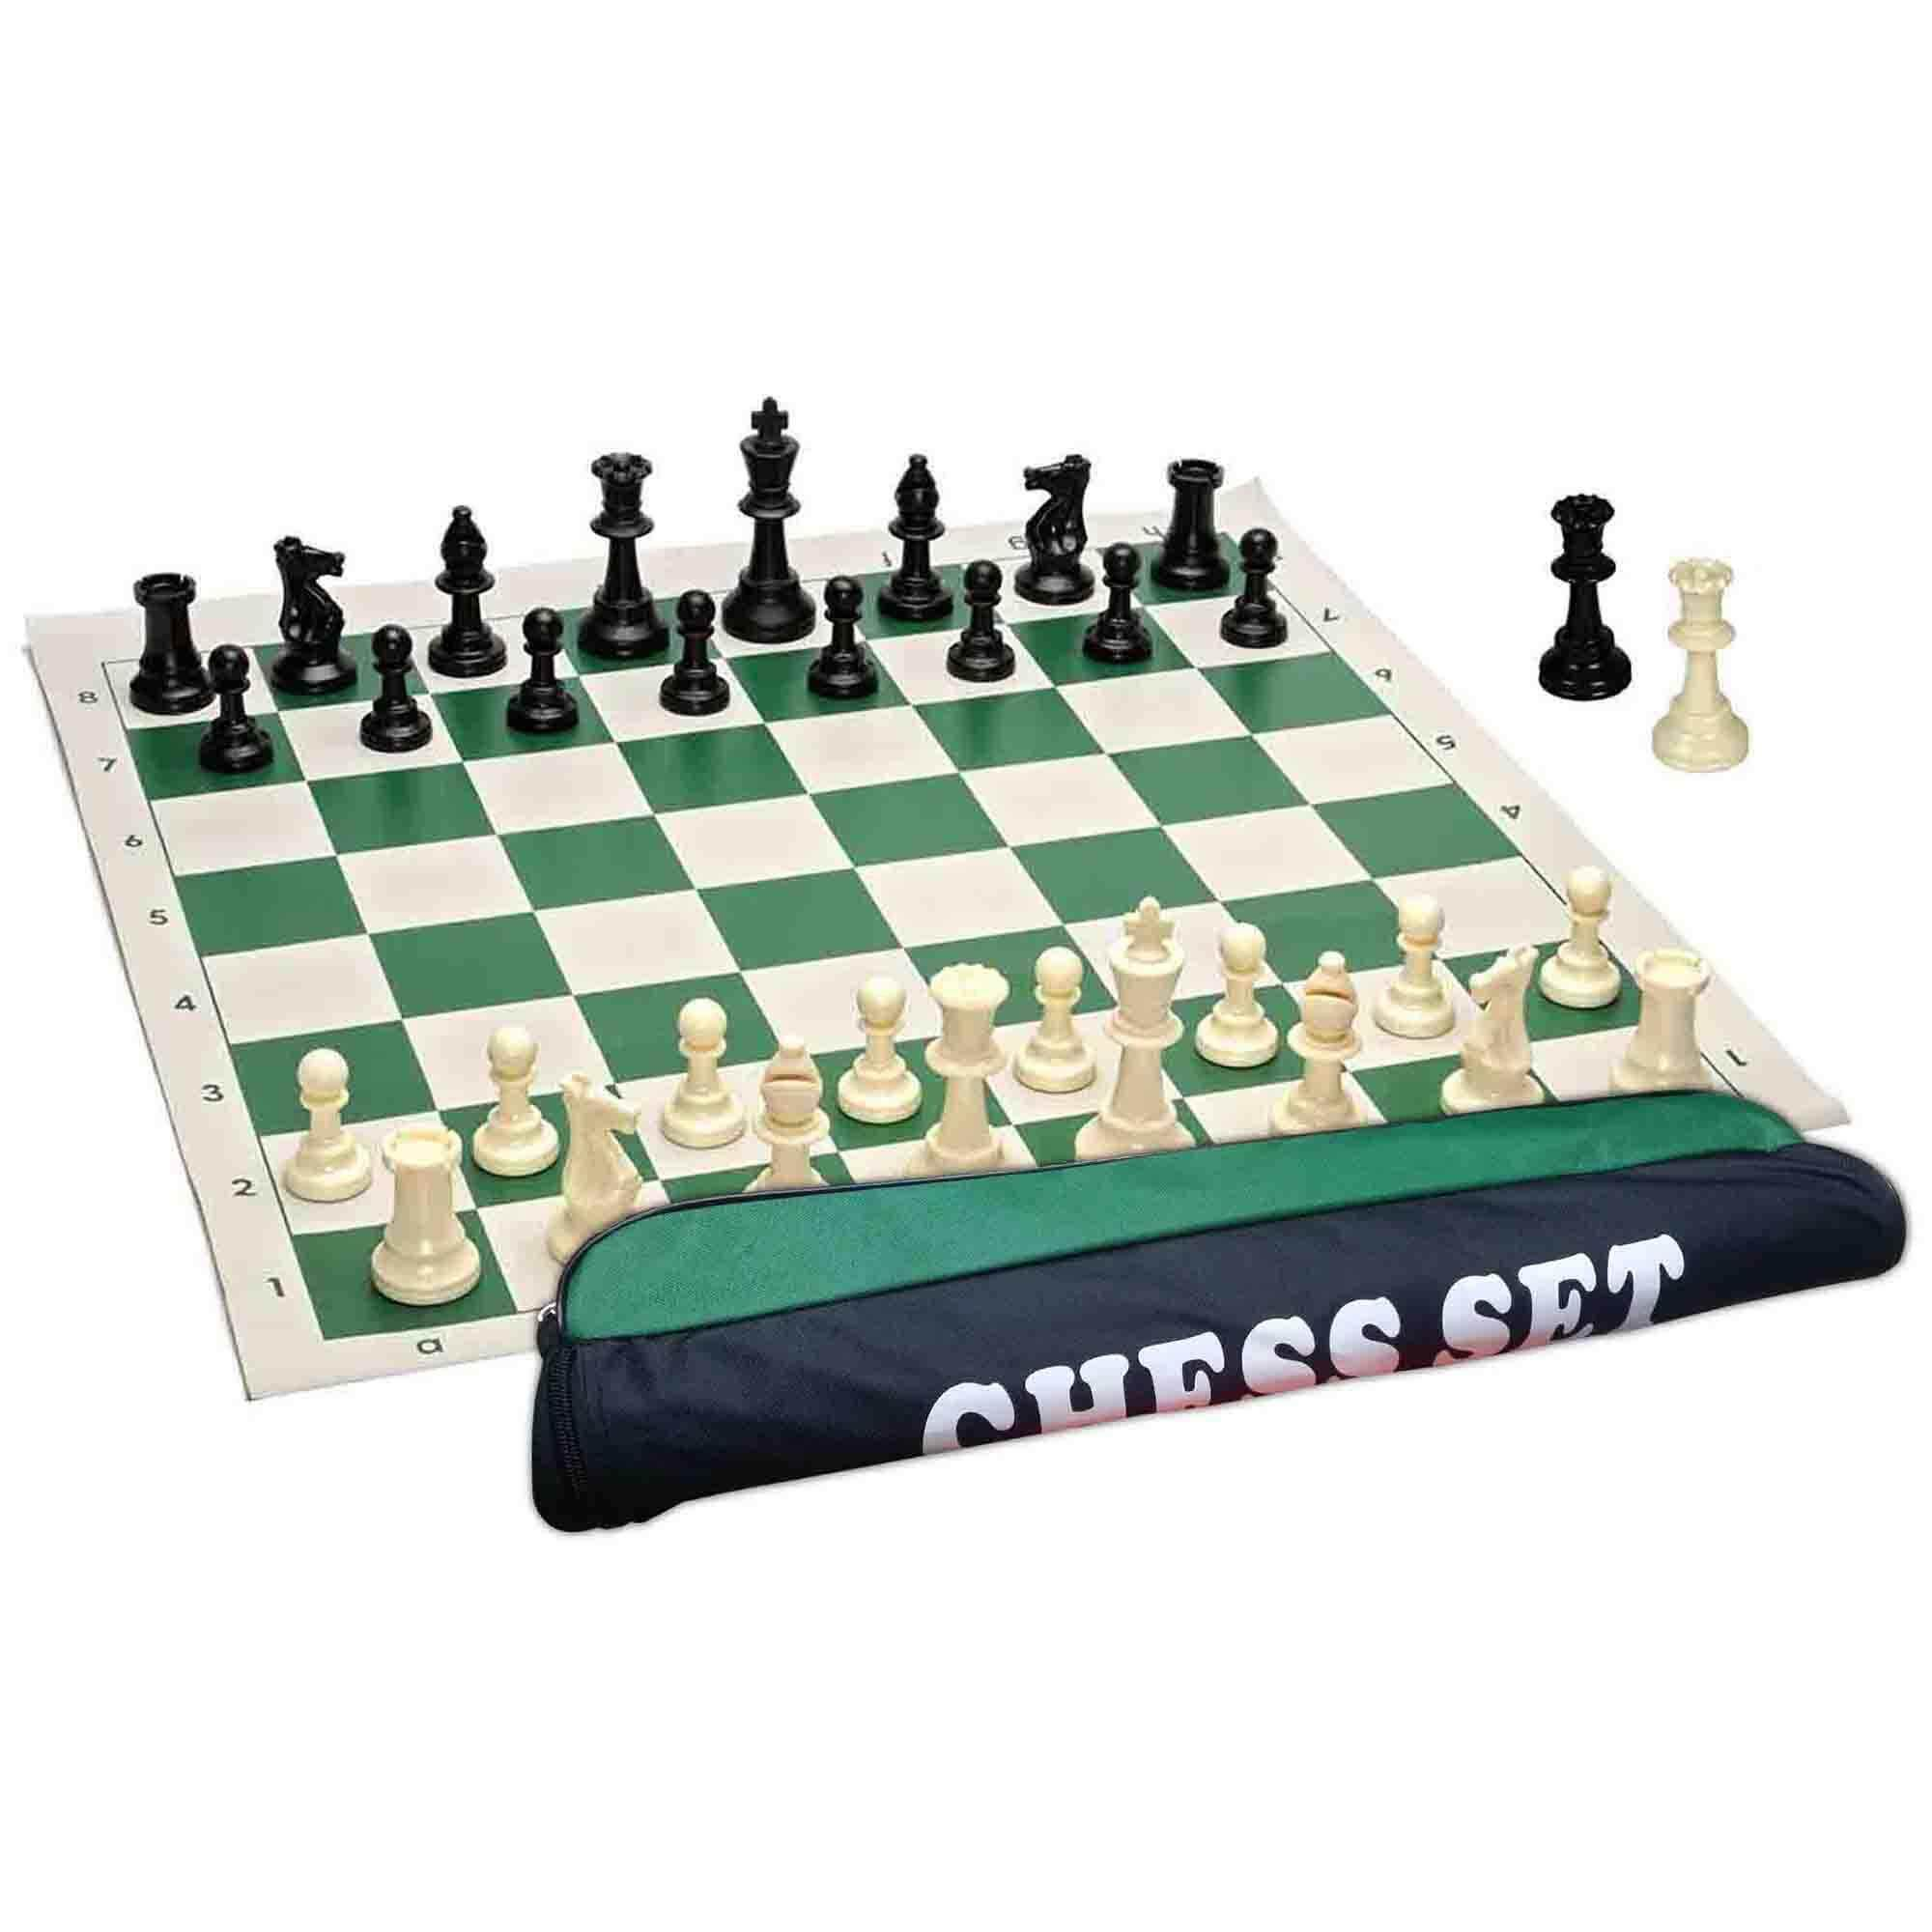 Roll-up Travel Chess Set With A Carrybag 42 cm X 42 cm